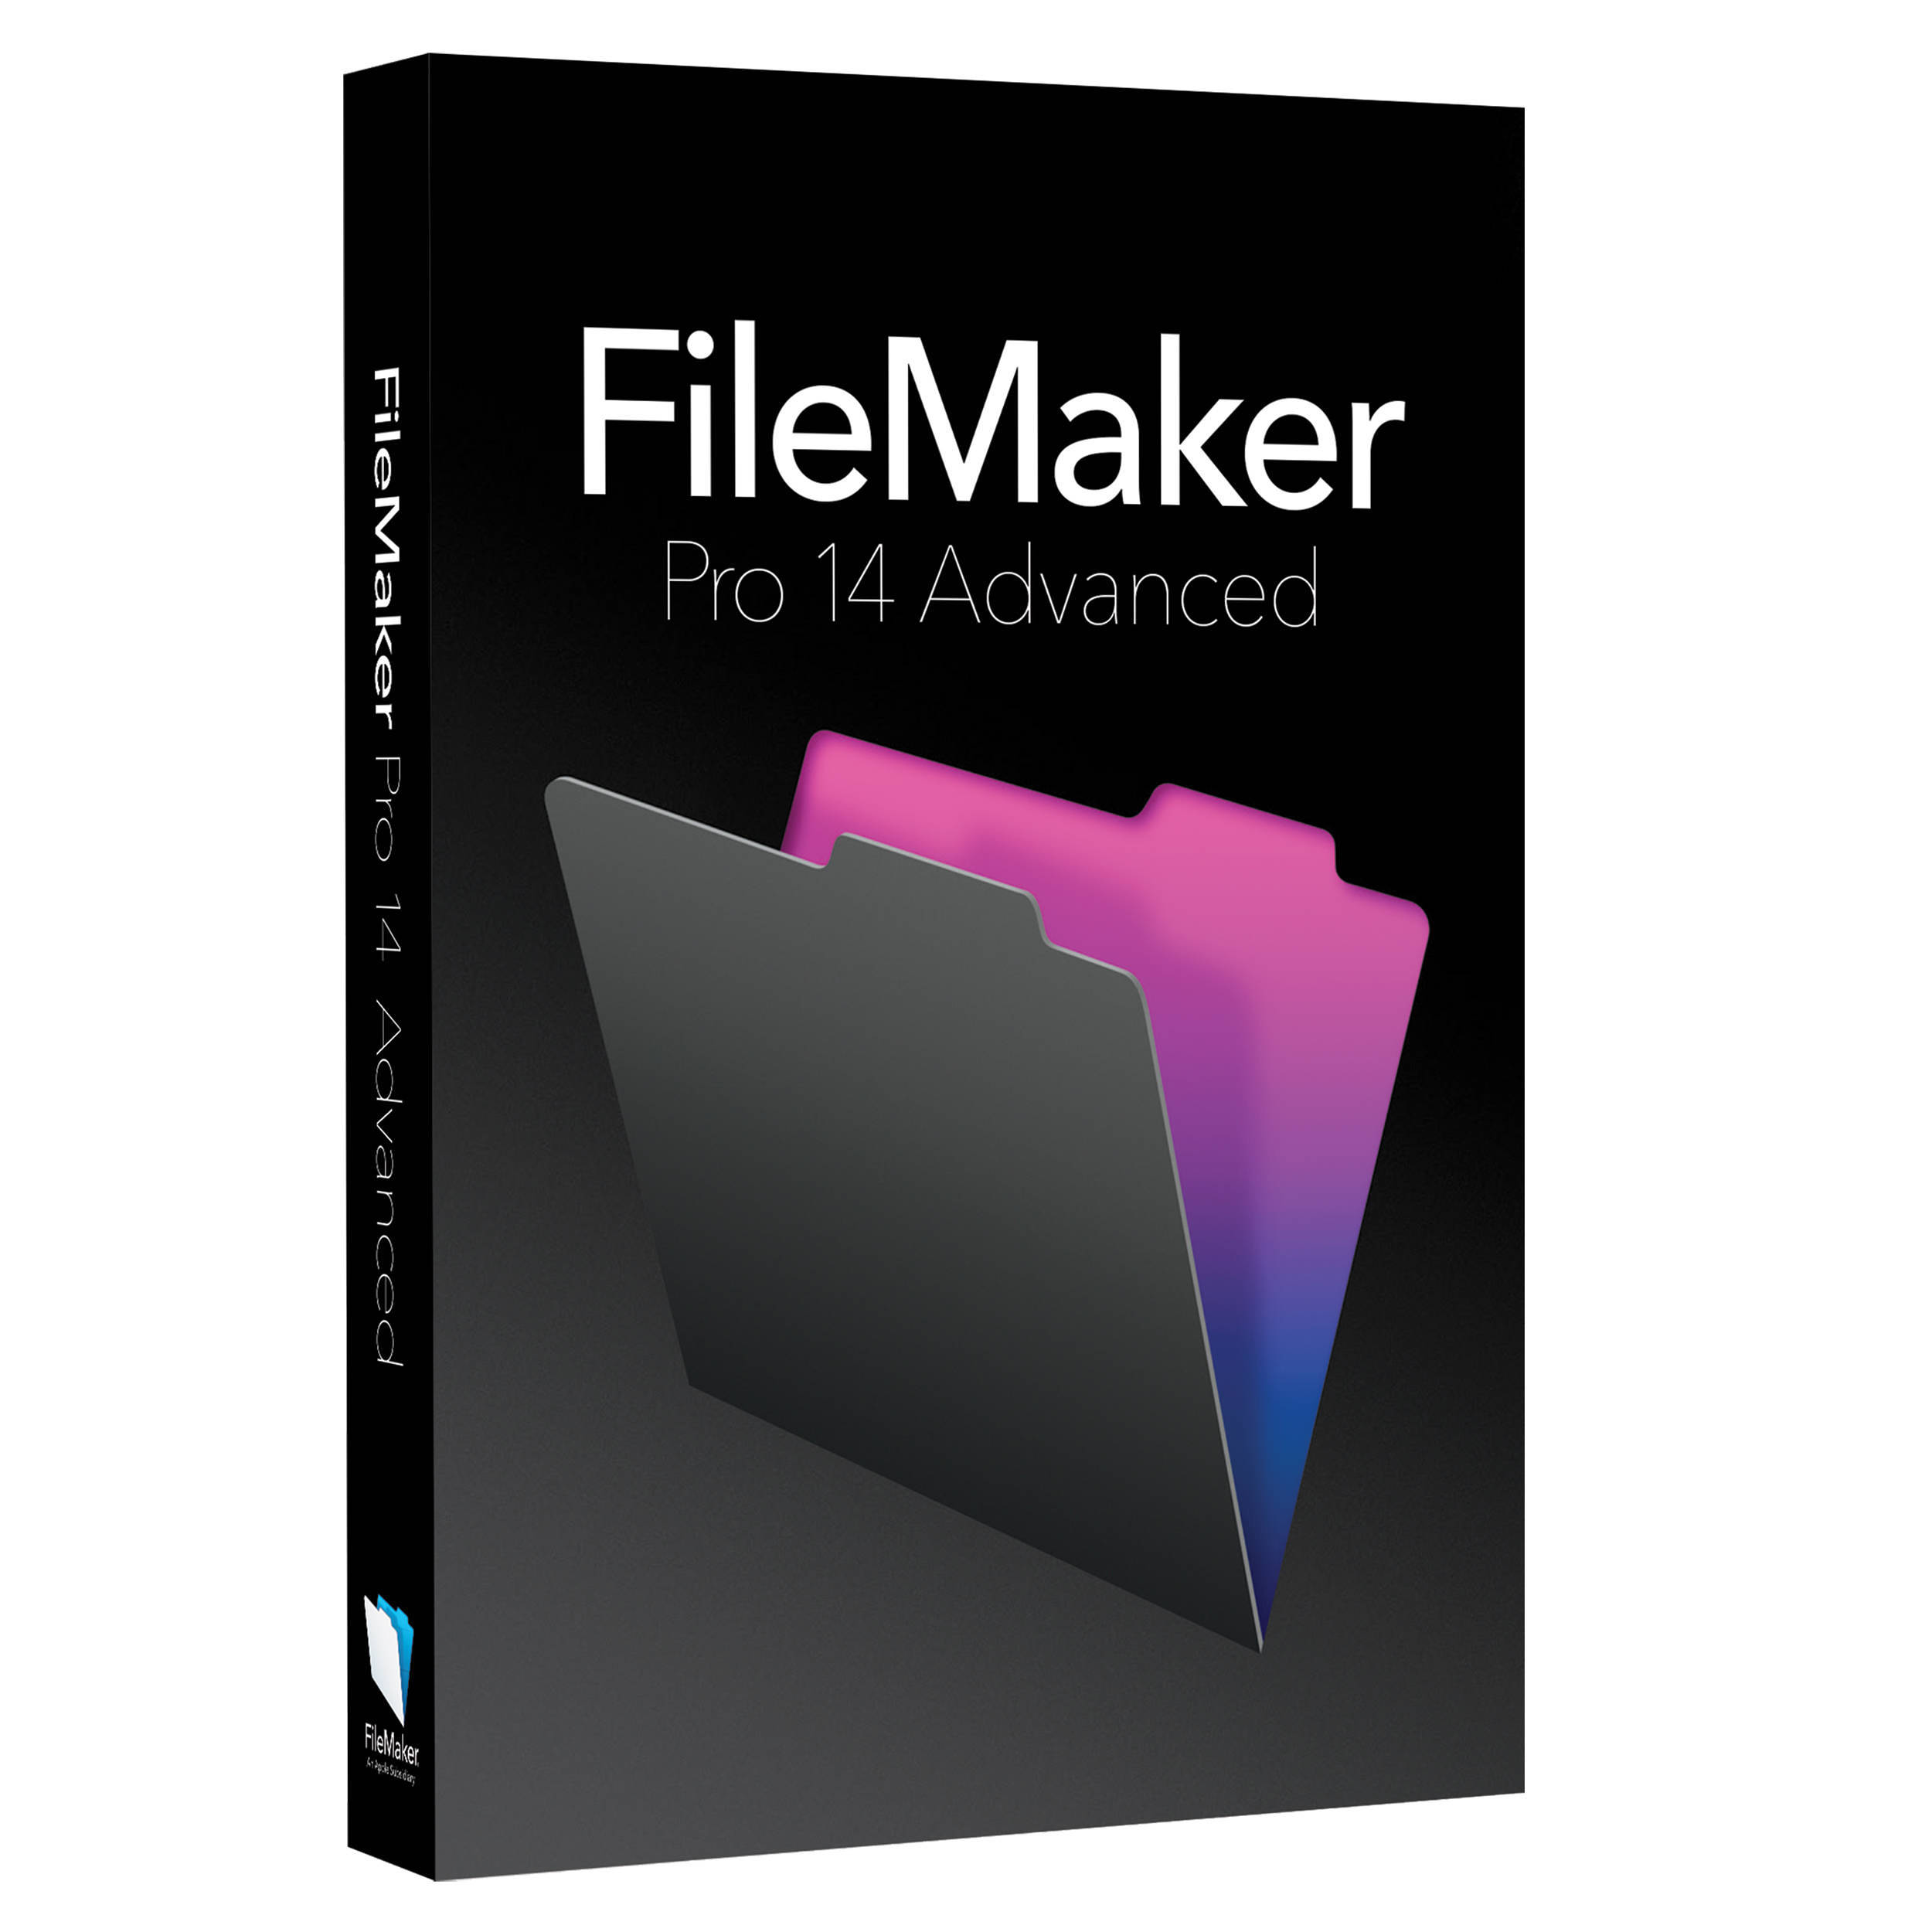 New FileMaker User Licensing | DB Services